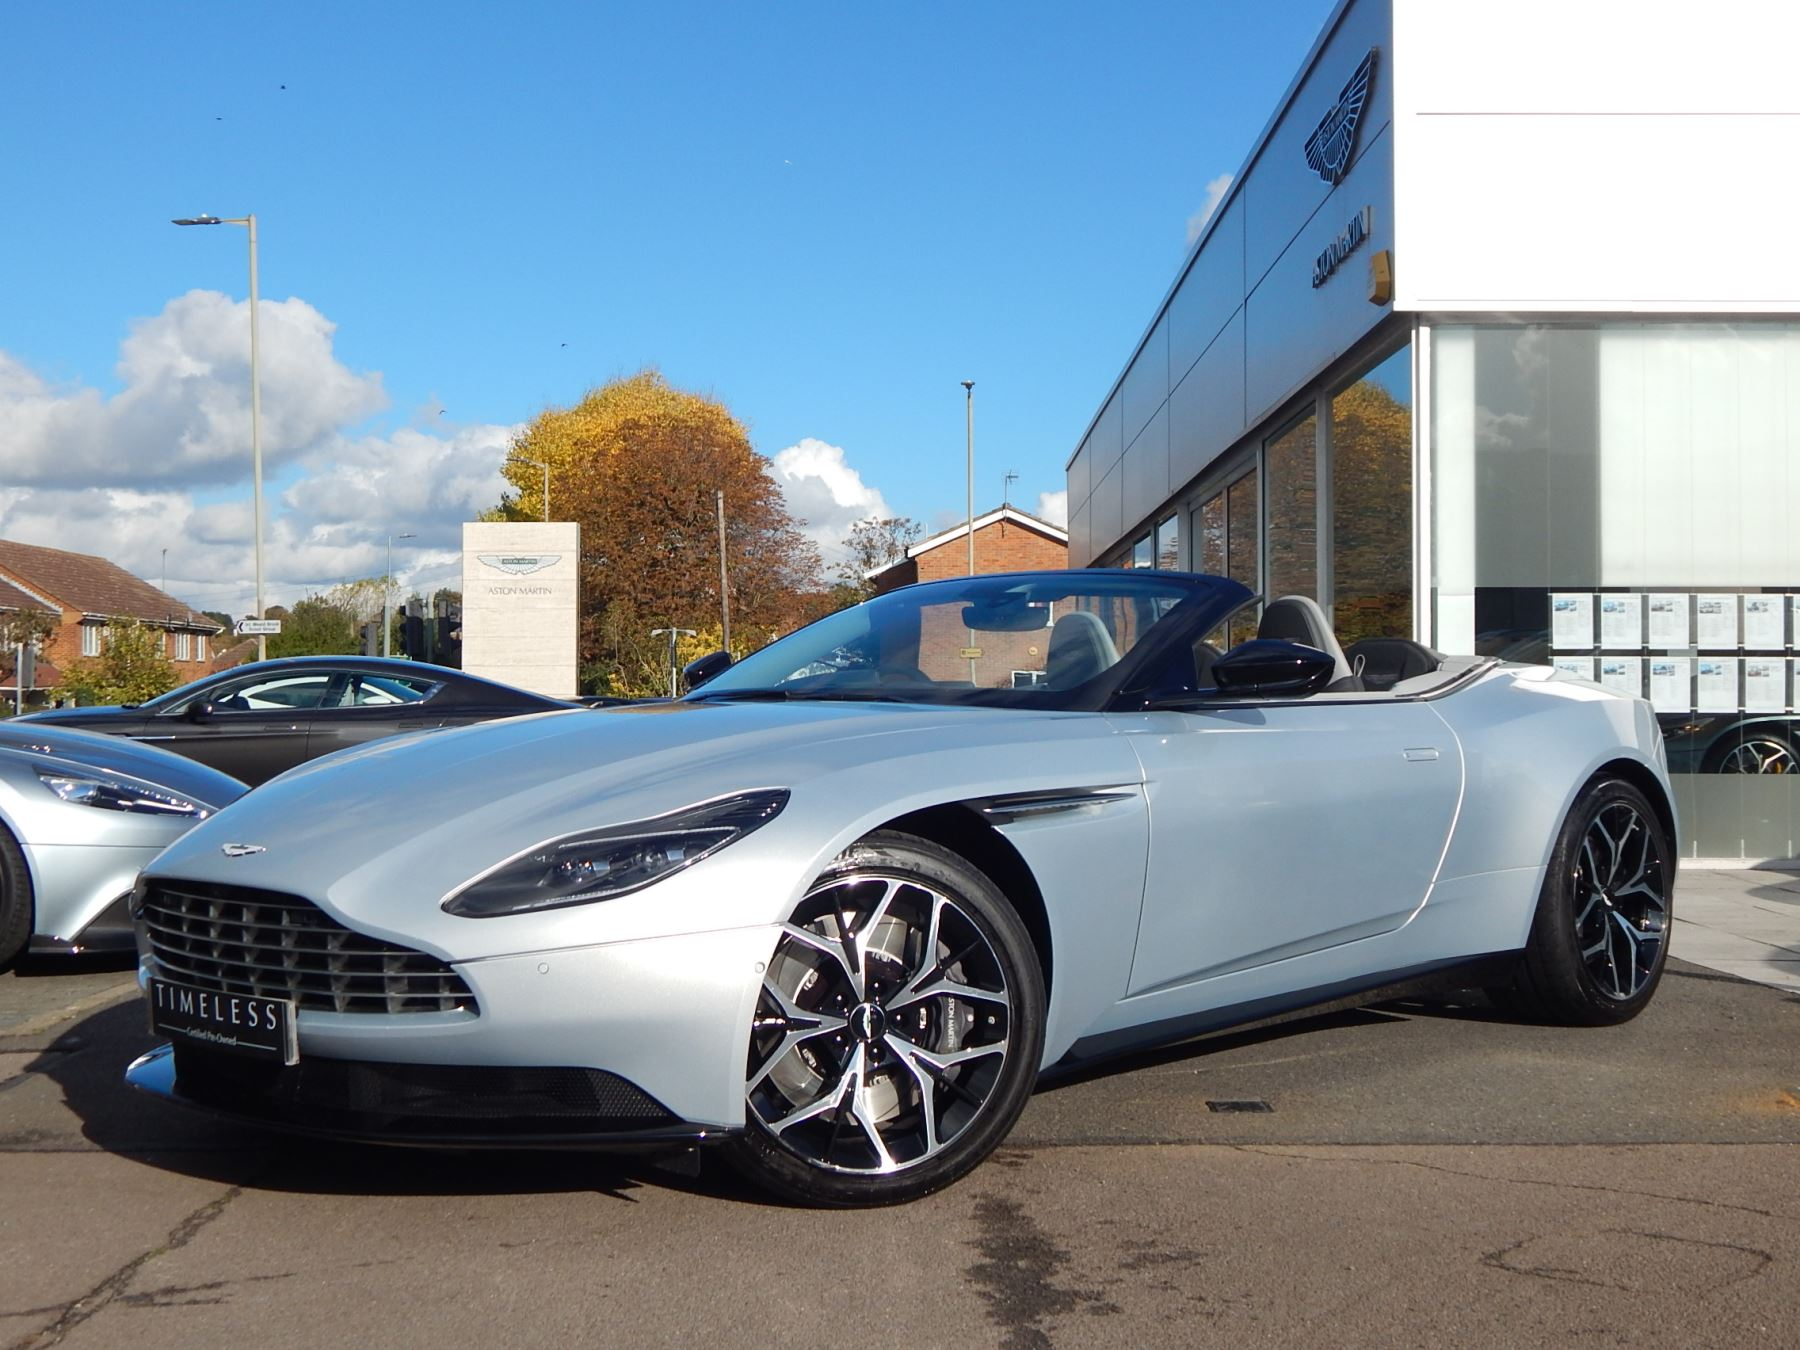 Aston Martin DB11 Volante 4.0 V8 Twin Turbo image 1